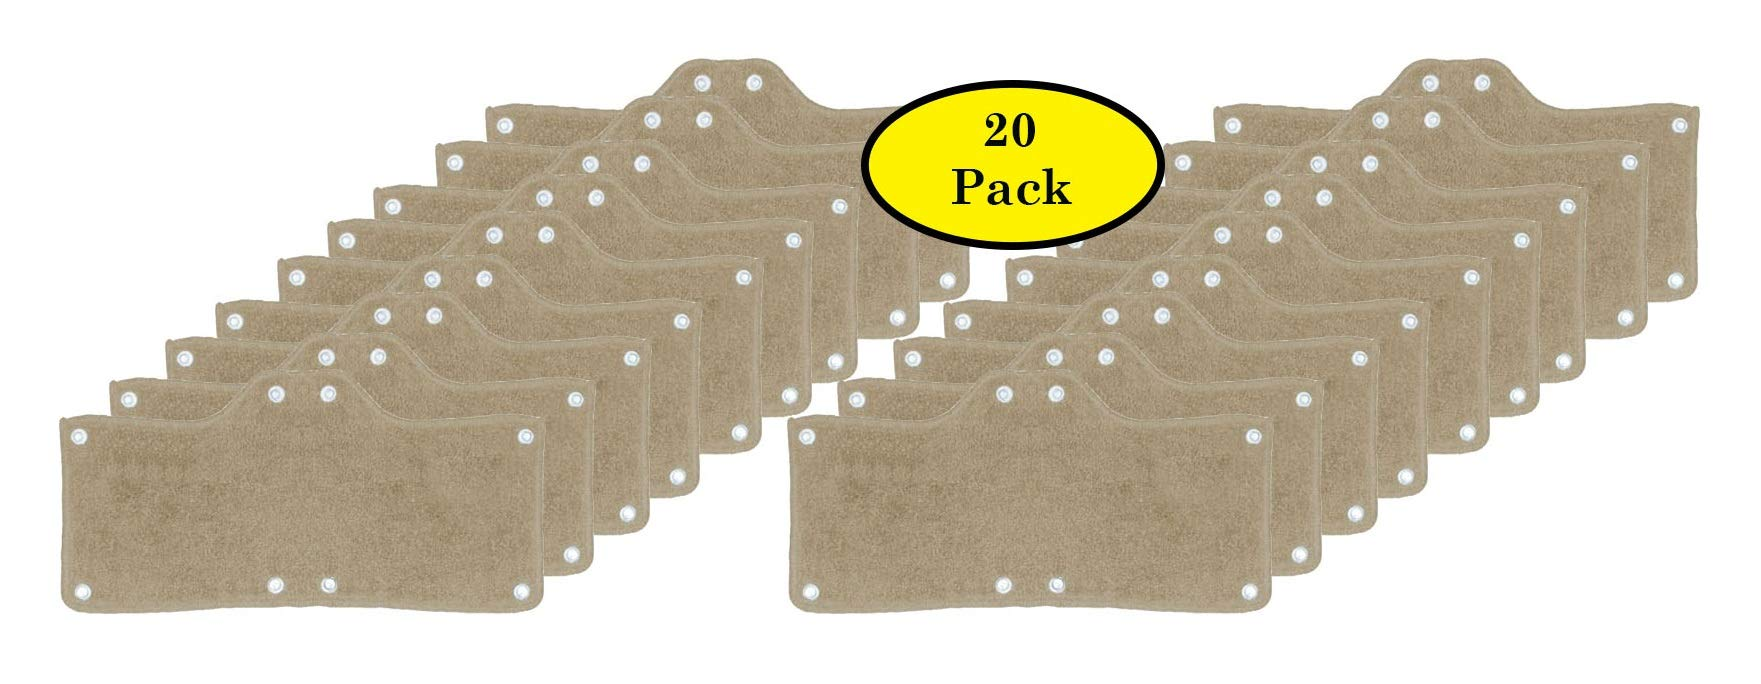 20 Pack Best Hard Hat Sweatband Beige Washable Snap On Sweat Band Liner Safety Accessories